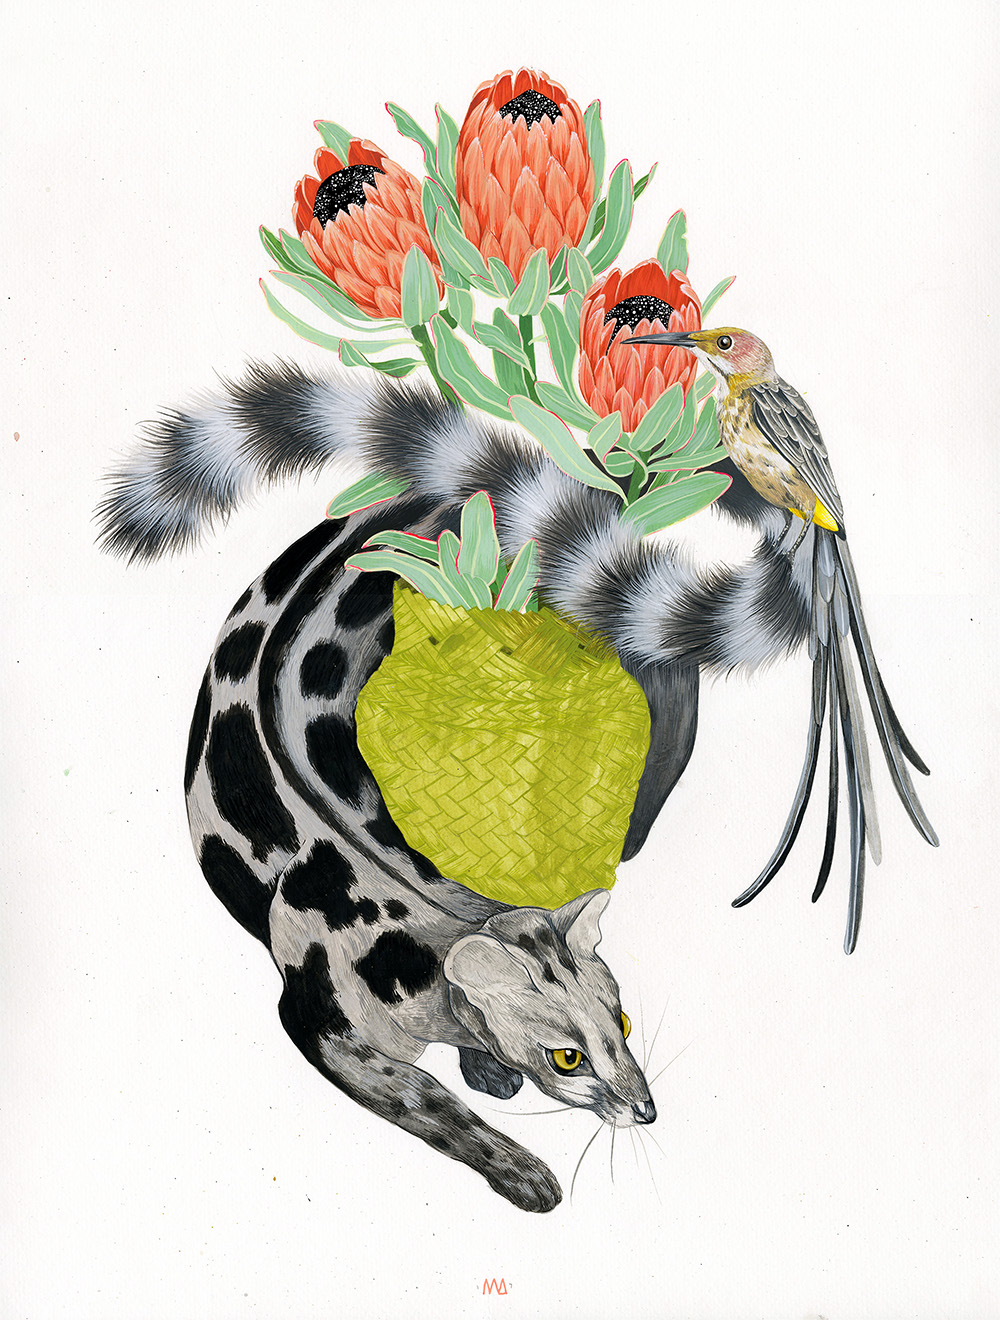 Proteas Pollinators - Gouache on paper - Available - contact ReliquaryTattoo@gmail.com for purchase inquiry